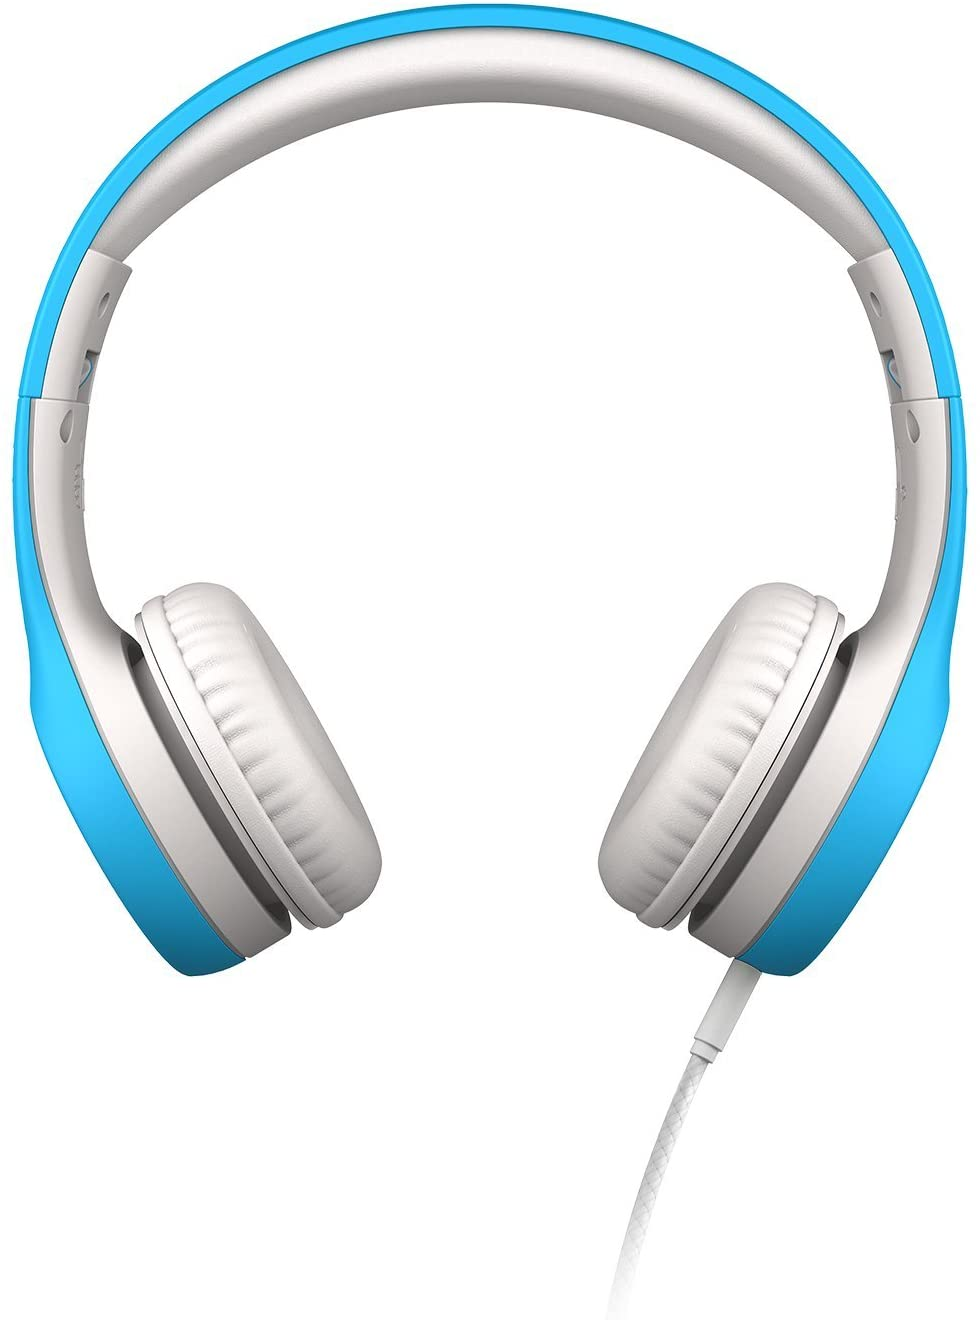 LilGadgets Kids Premium Volume Limited Headphones are the safest headphones for kids. These headphones compress the noise, and loudest sounds and thus make the kid's ear safe from getting damage.